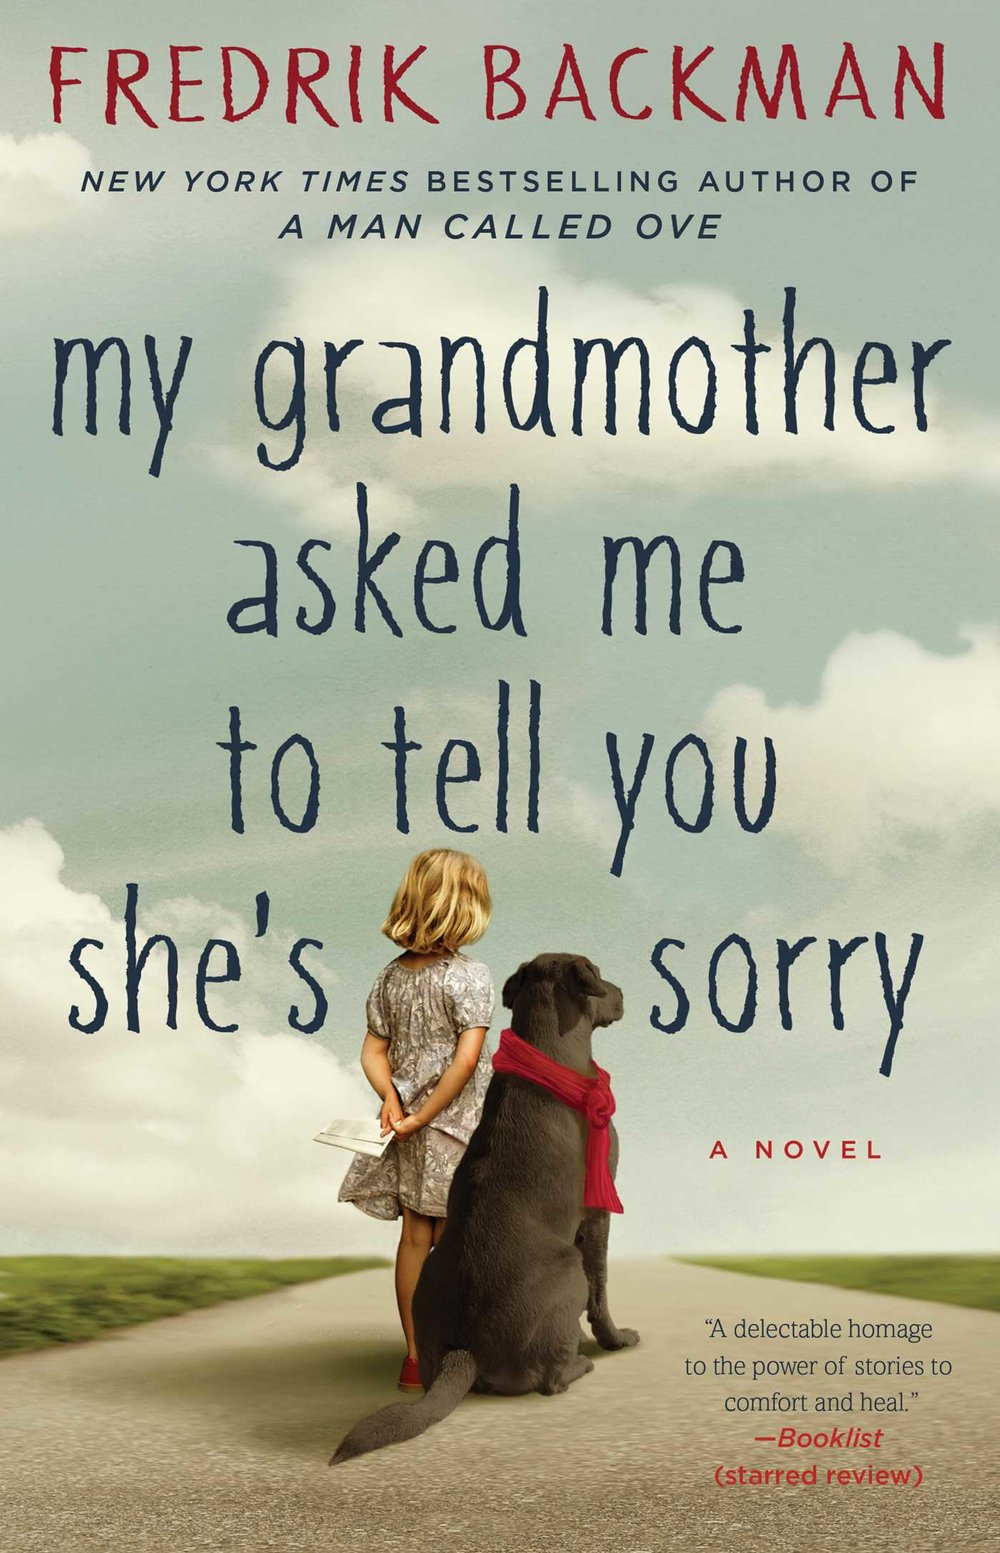 my-grandmother-asked-me-to-tell-you-shes-sorry-9781501115073_hr.jpg